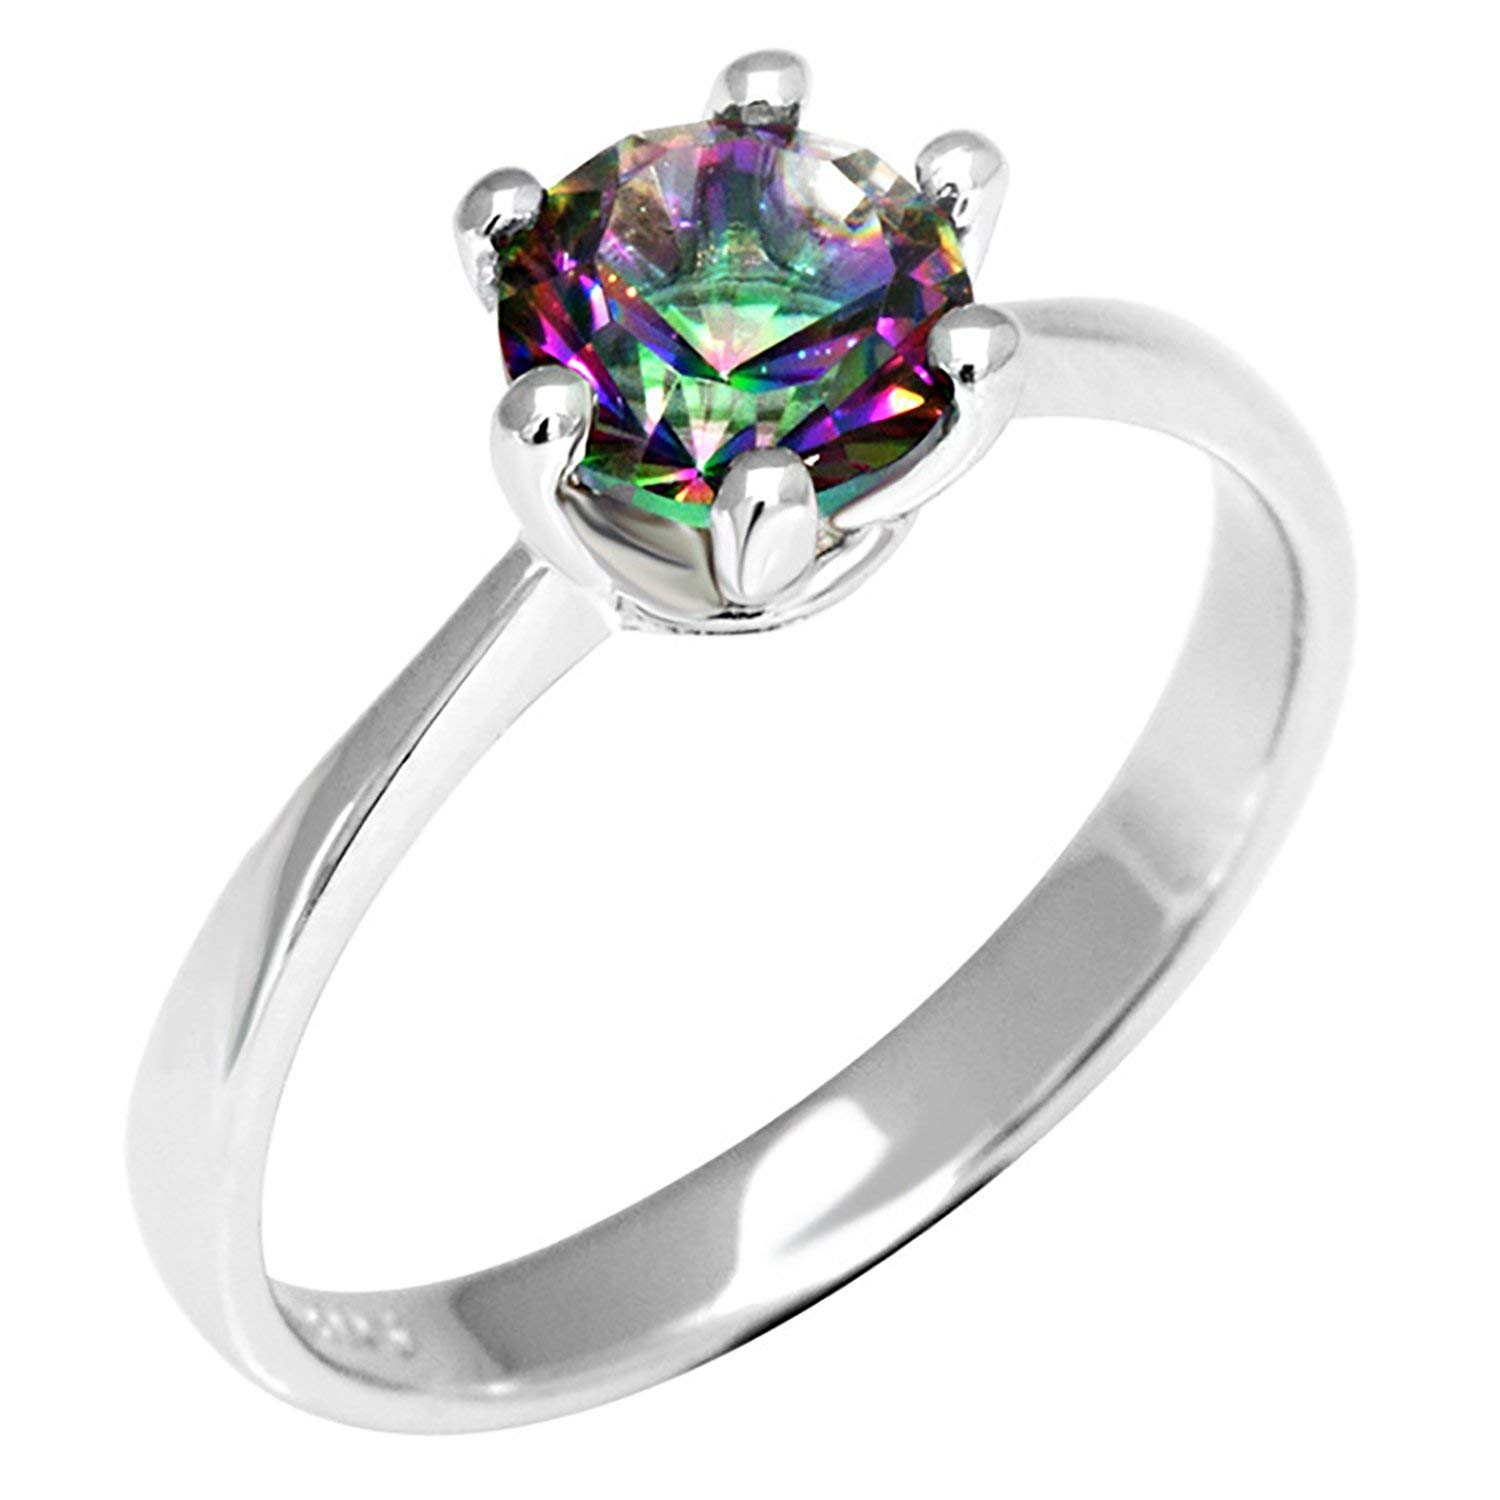 AYT Natural Mystic Fire Rainbow Topaz Ring Engagement Wedding Ring Solid 925 Sterling Jewelry Fine Jewelry Women Ring Classic